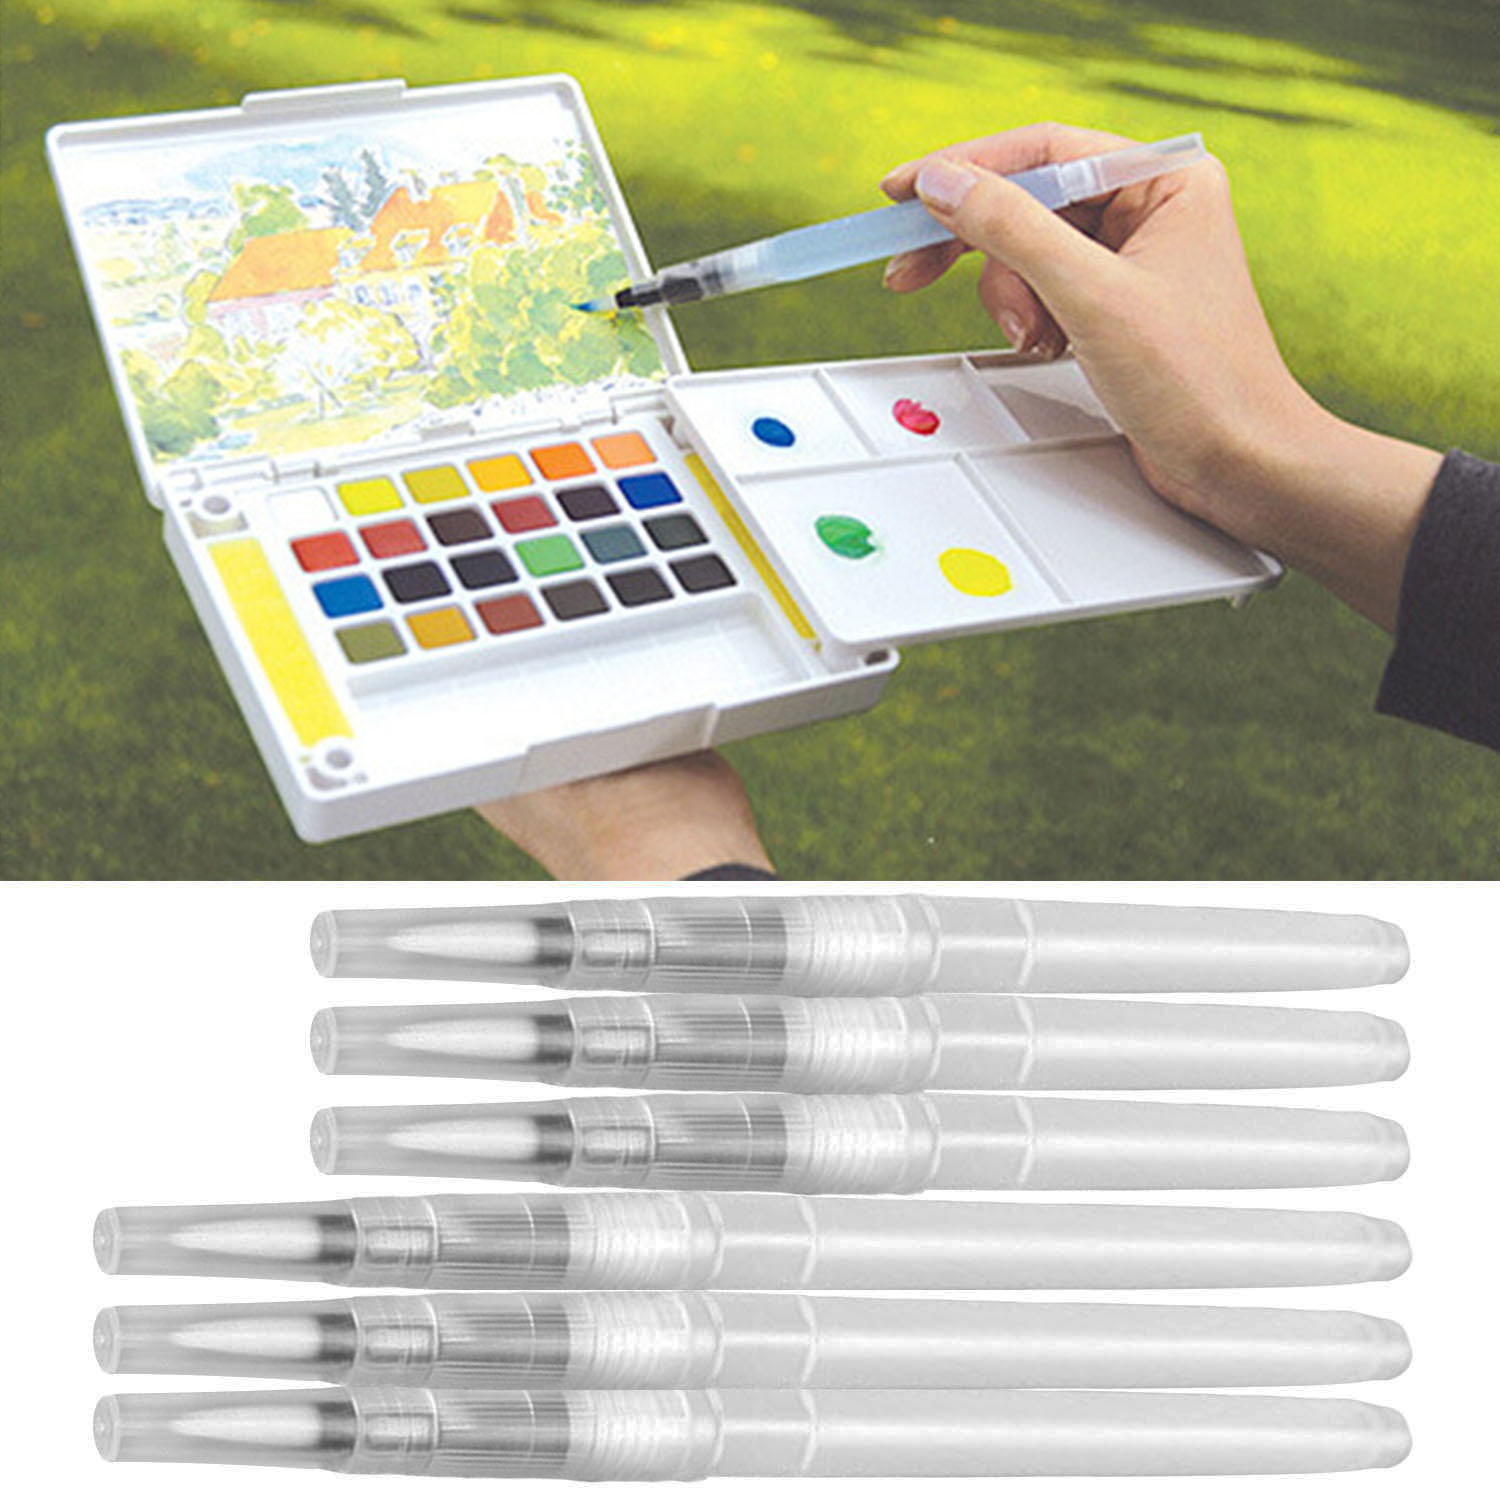 6 pcs portable water color brush pen paint watercolor for Watercolor supplies for beginners